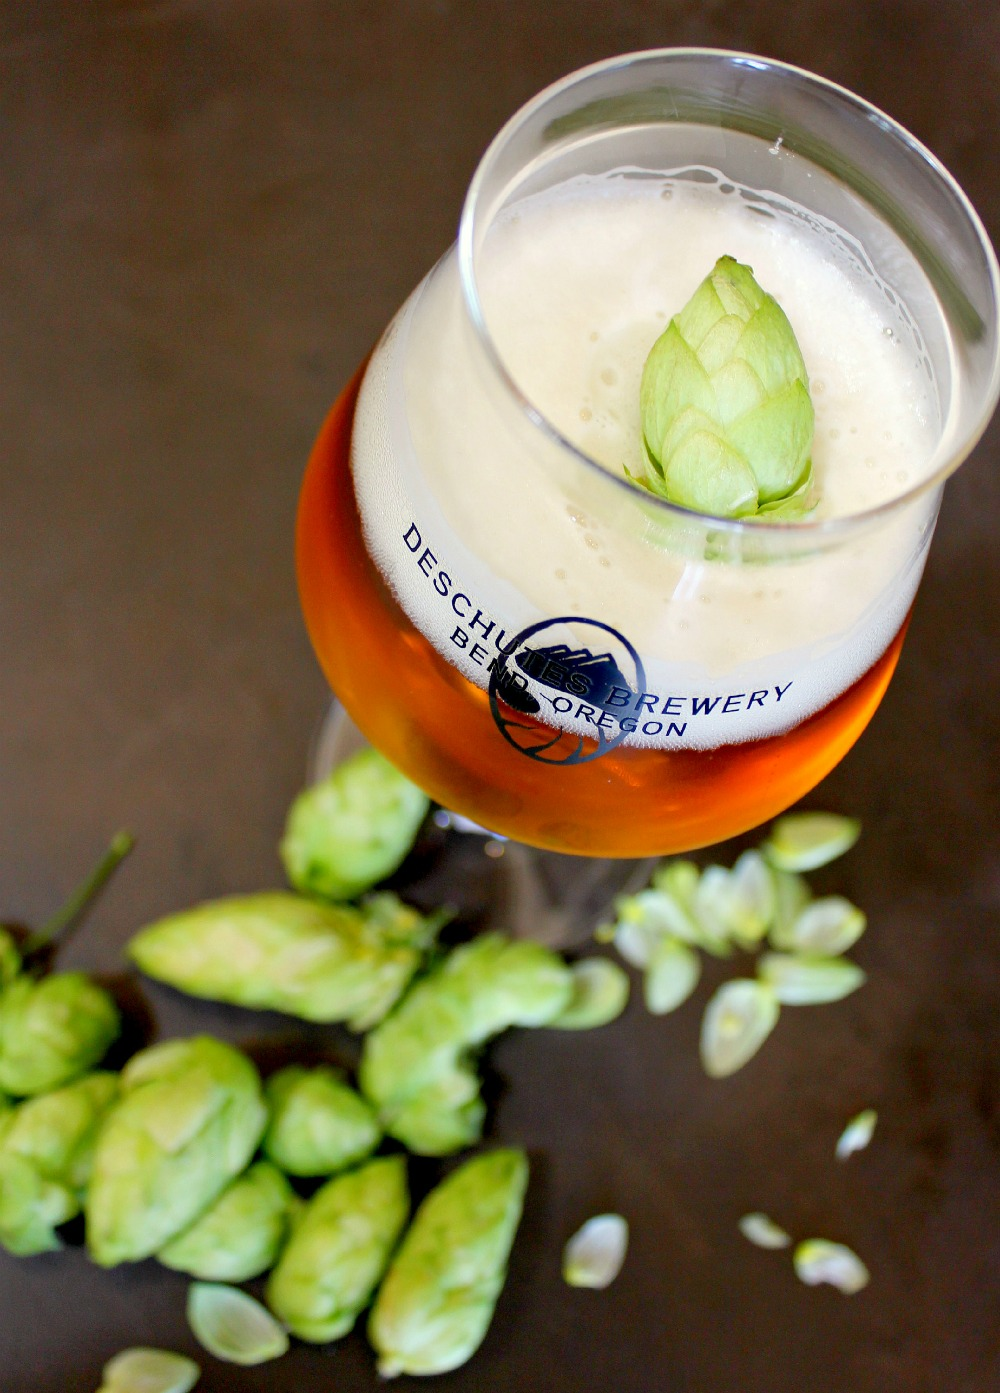 image of fresh hops courtesy of Deschutes Brewery